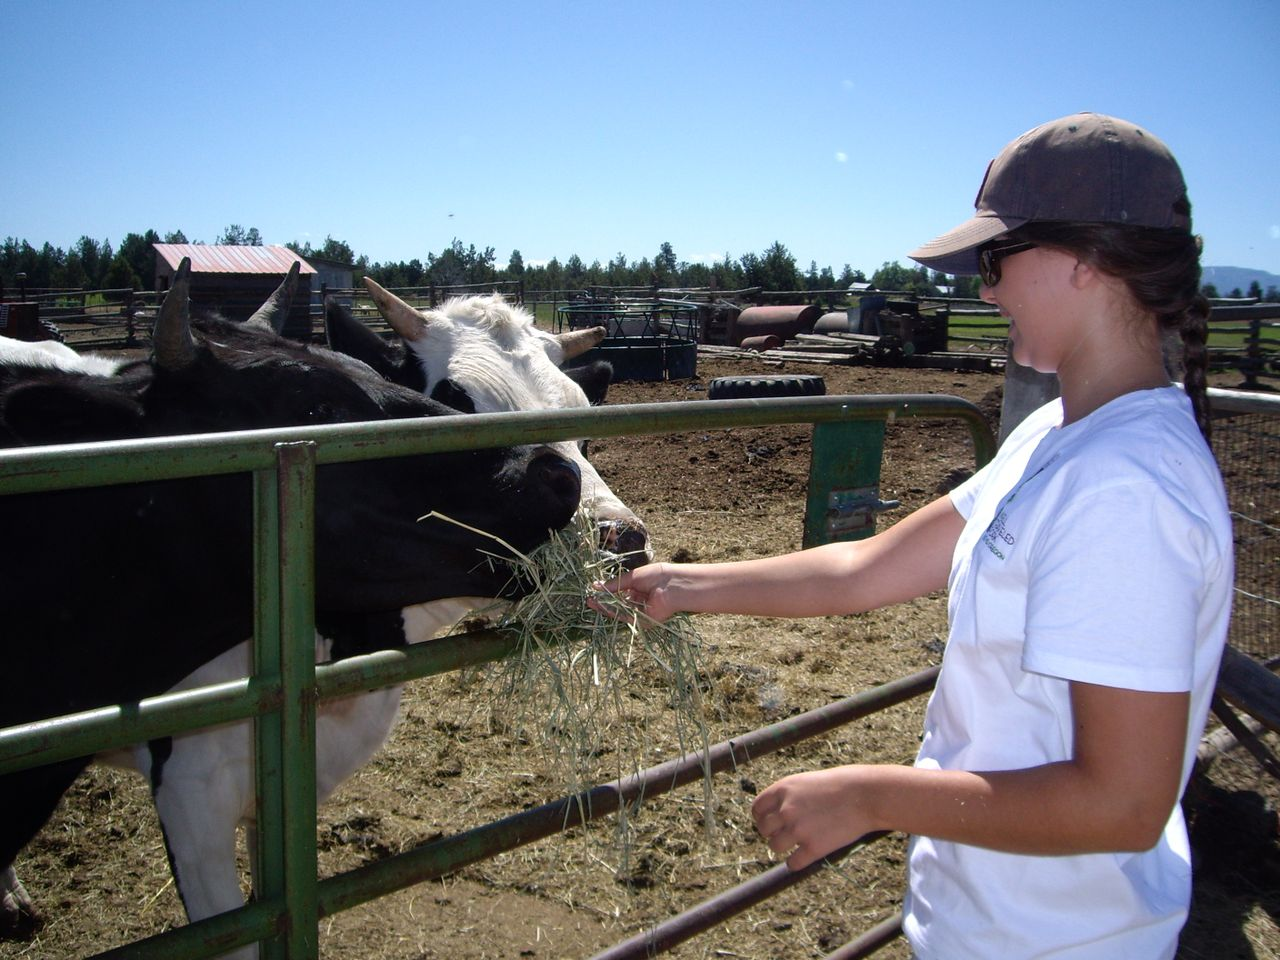 Get up close and personal with farm animals on the Farm & Ranch tour.